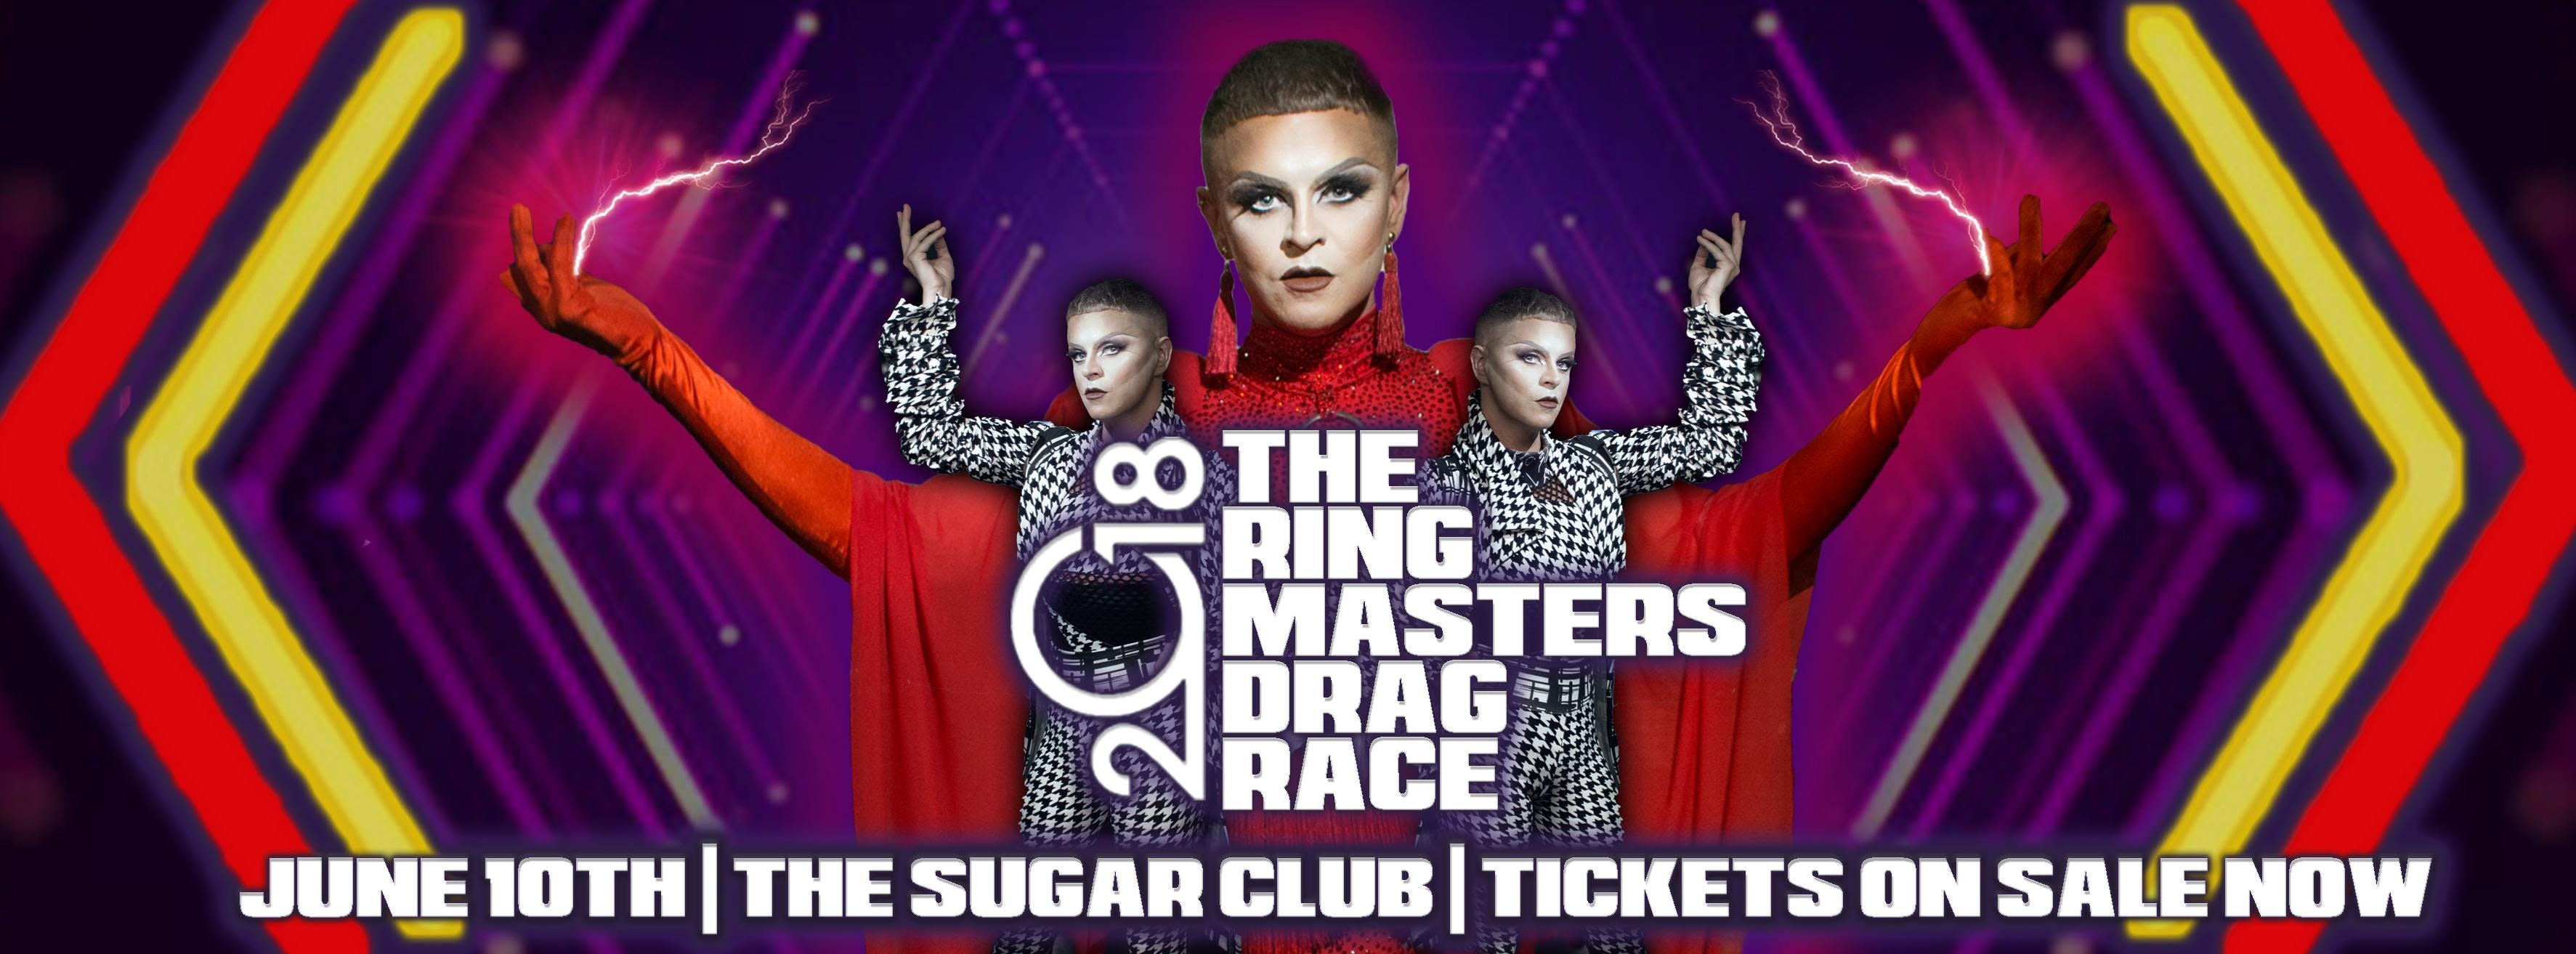 The Ringmasters Drag Race 2018